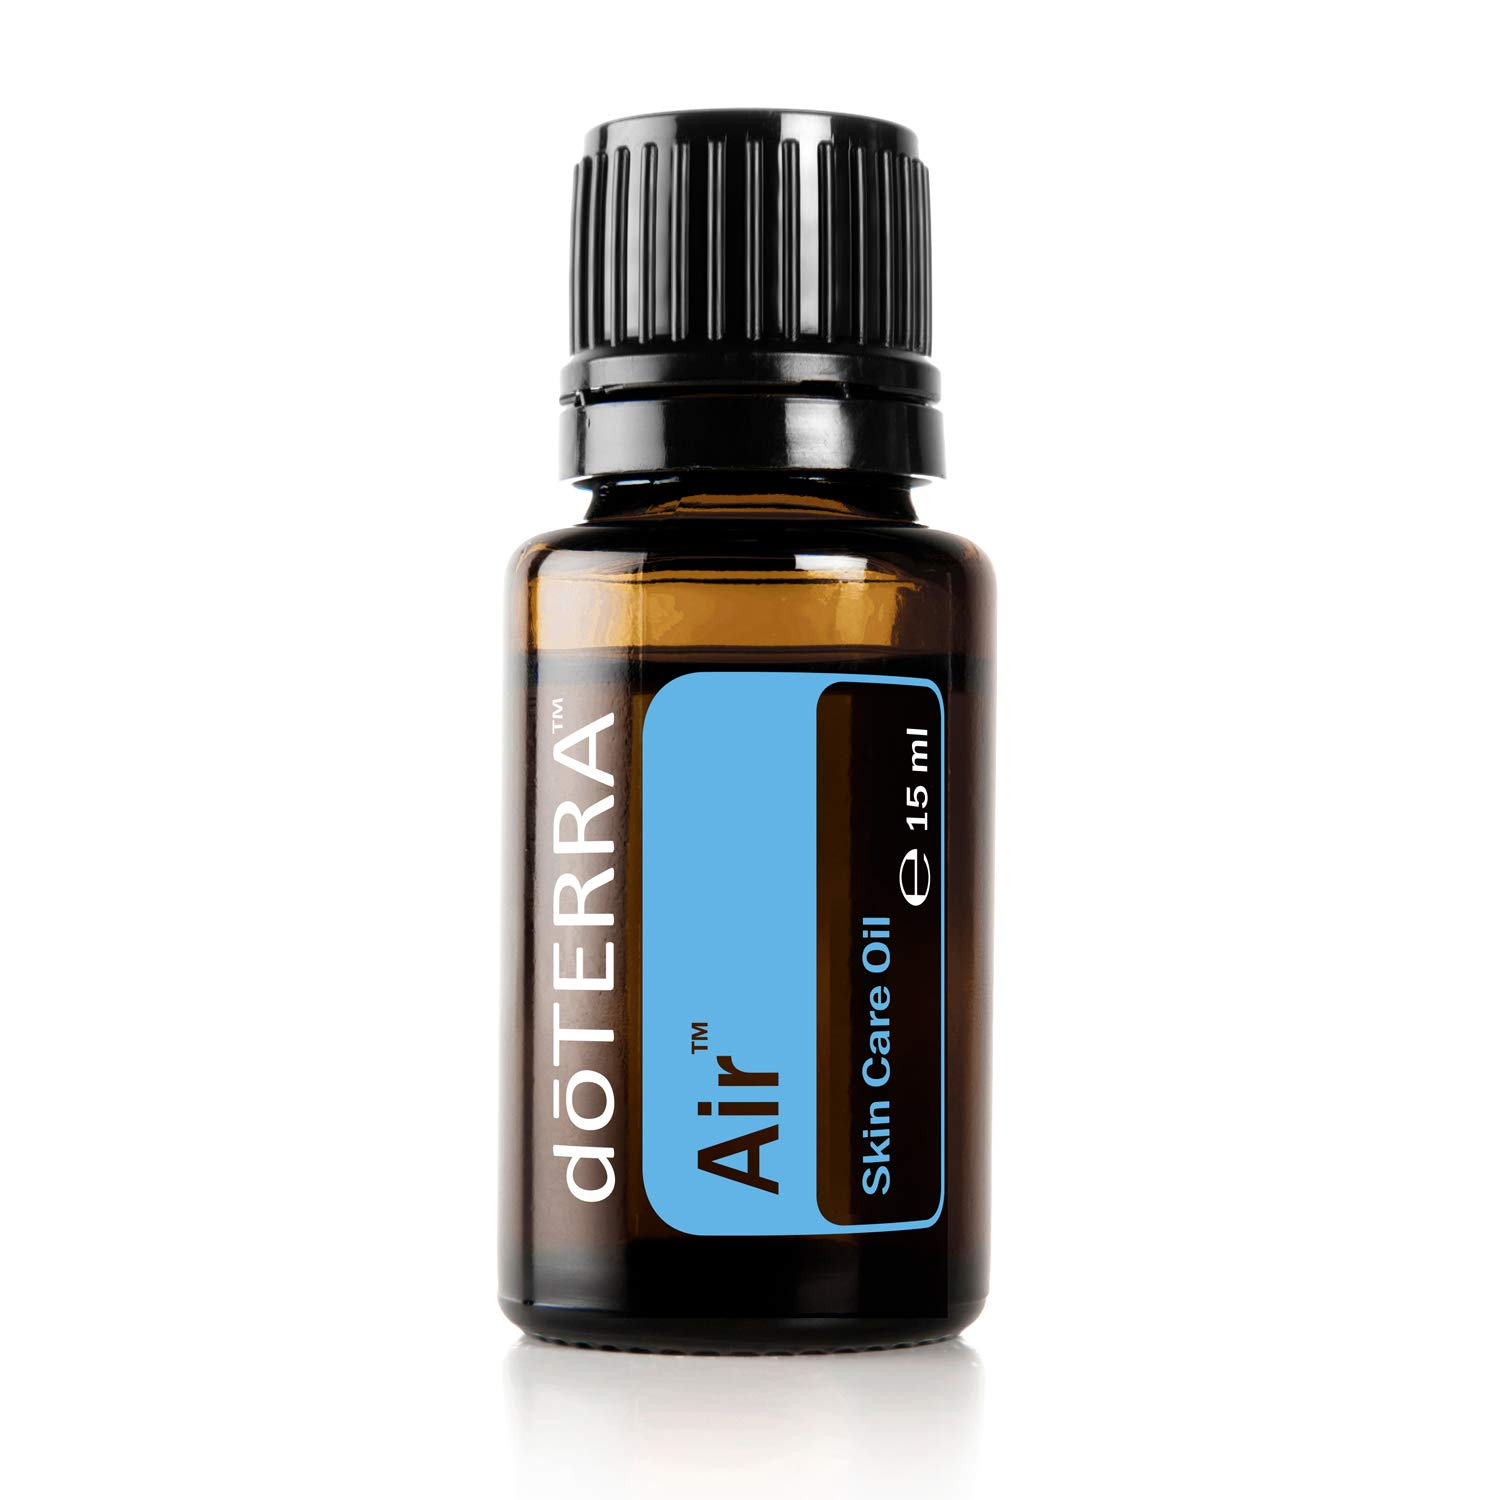 doTERRA - Air Essential Oil Respiratory Blend - Promotes Restful Sleep, Feelings of Clear Airways and Easy Breathing, Helps Minimize Seasonal Threat Effects; For Diffusion or Topical Use - 15 mL